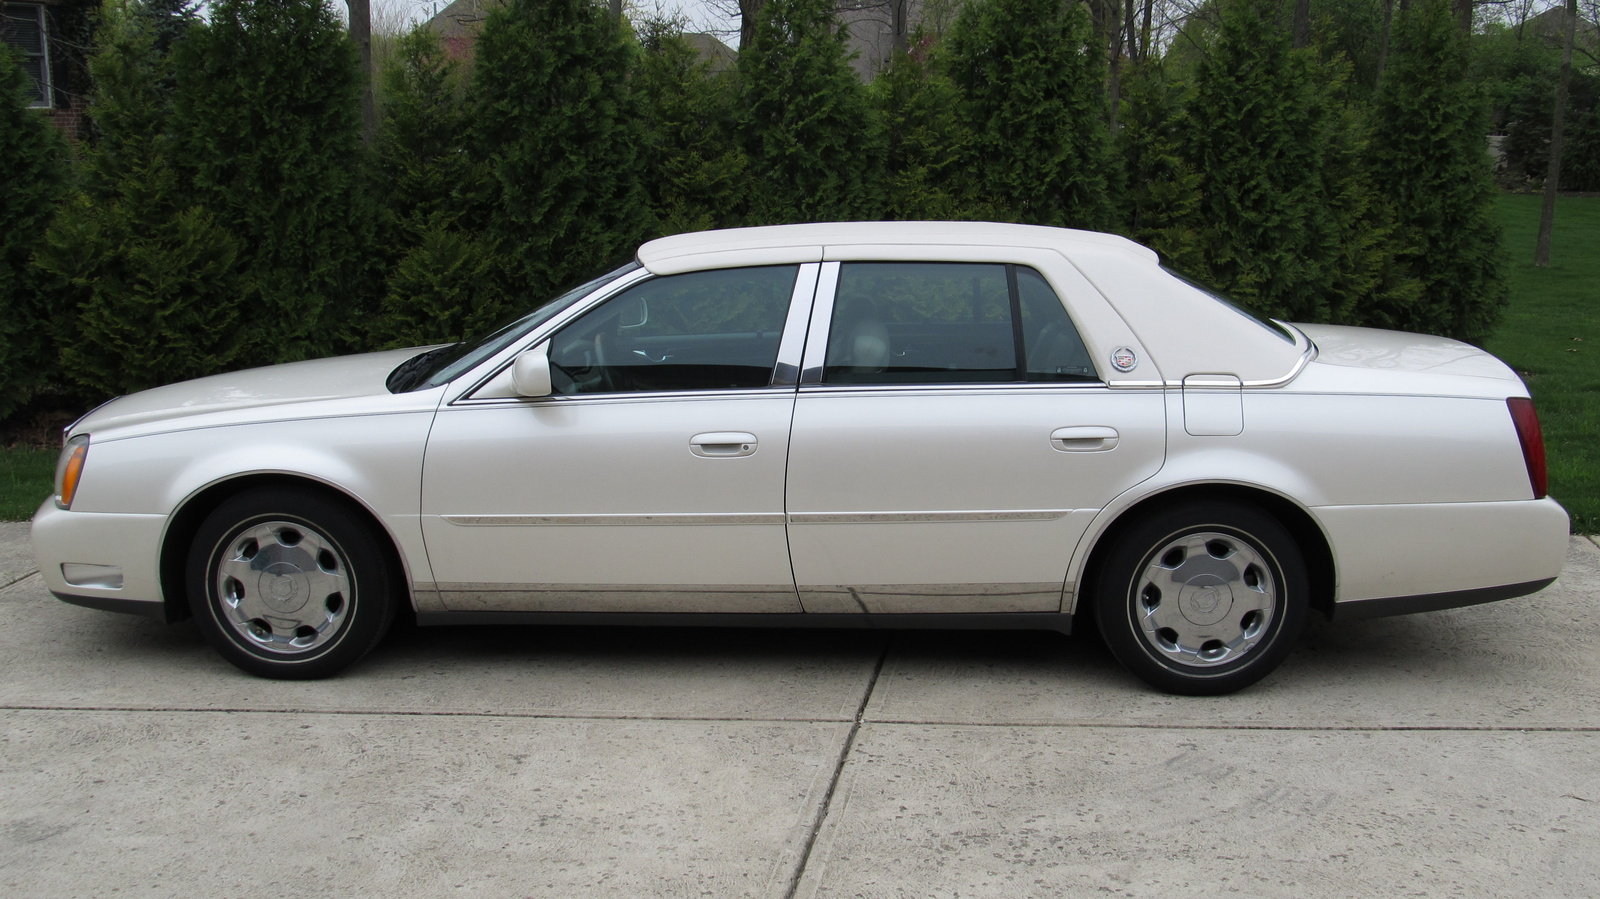 2002 cadillac deville exterior pictures cargurus. Cars Review. Best American Auto & Cars Review